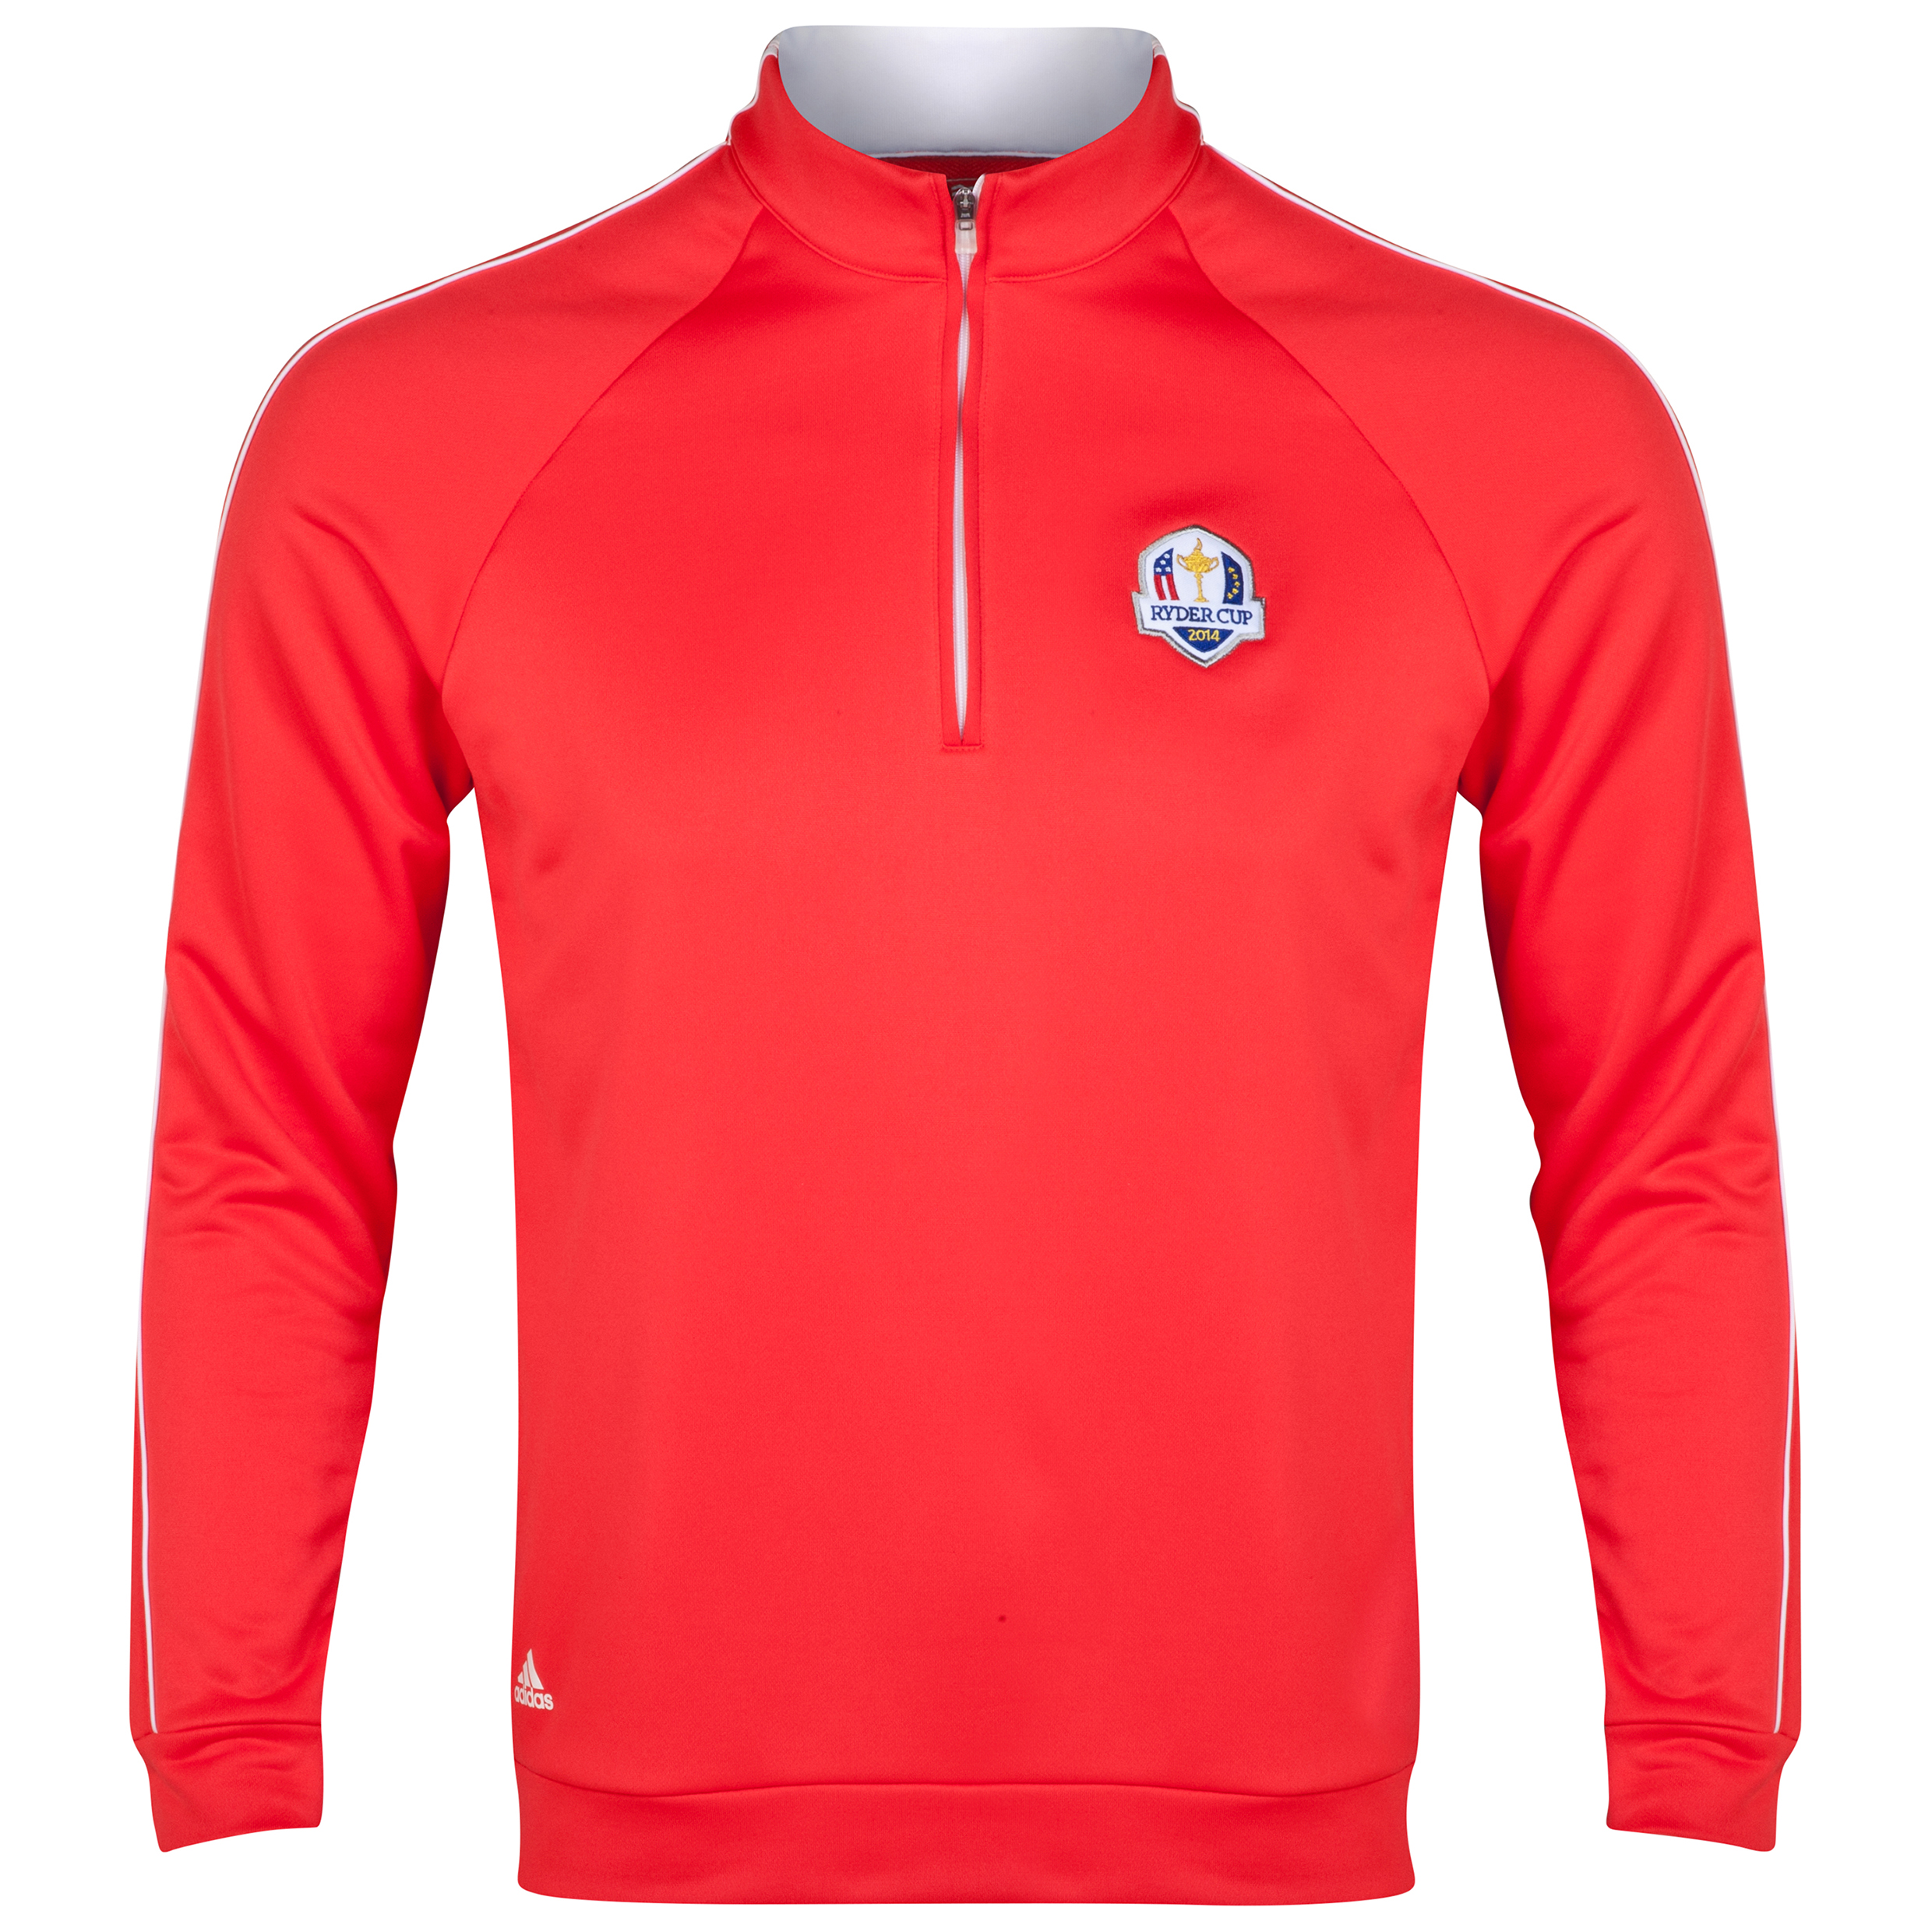 The 2014 Ryder Cup adidas ClimaLite 1/4 Zip Contrast Layering Piece Red